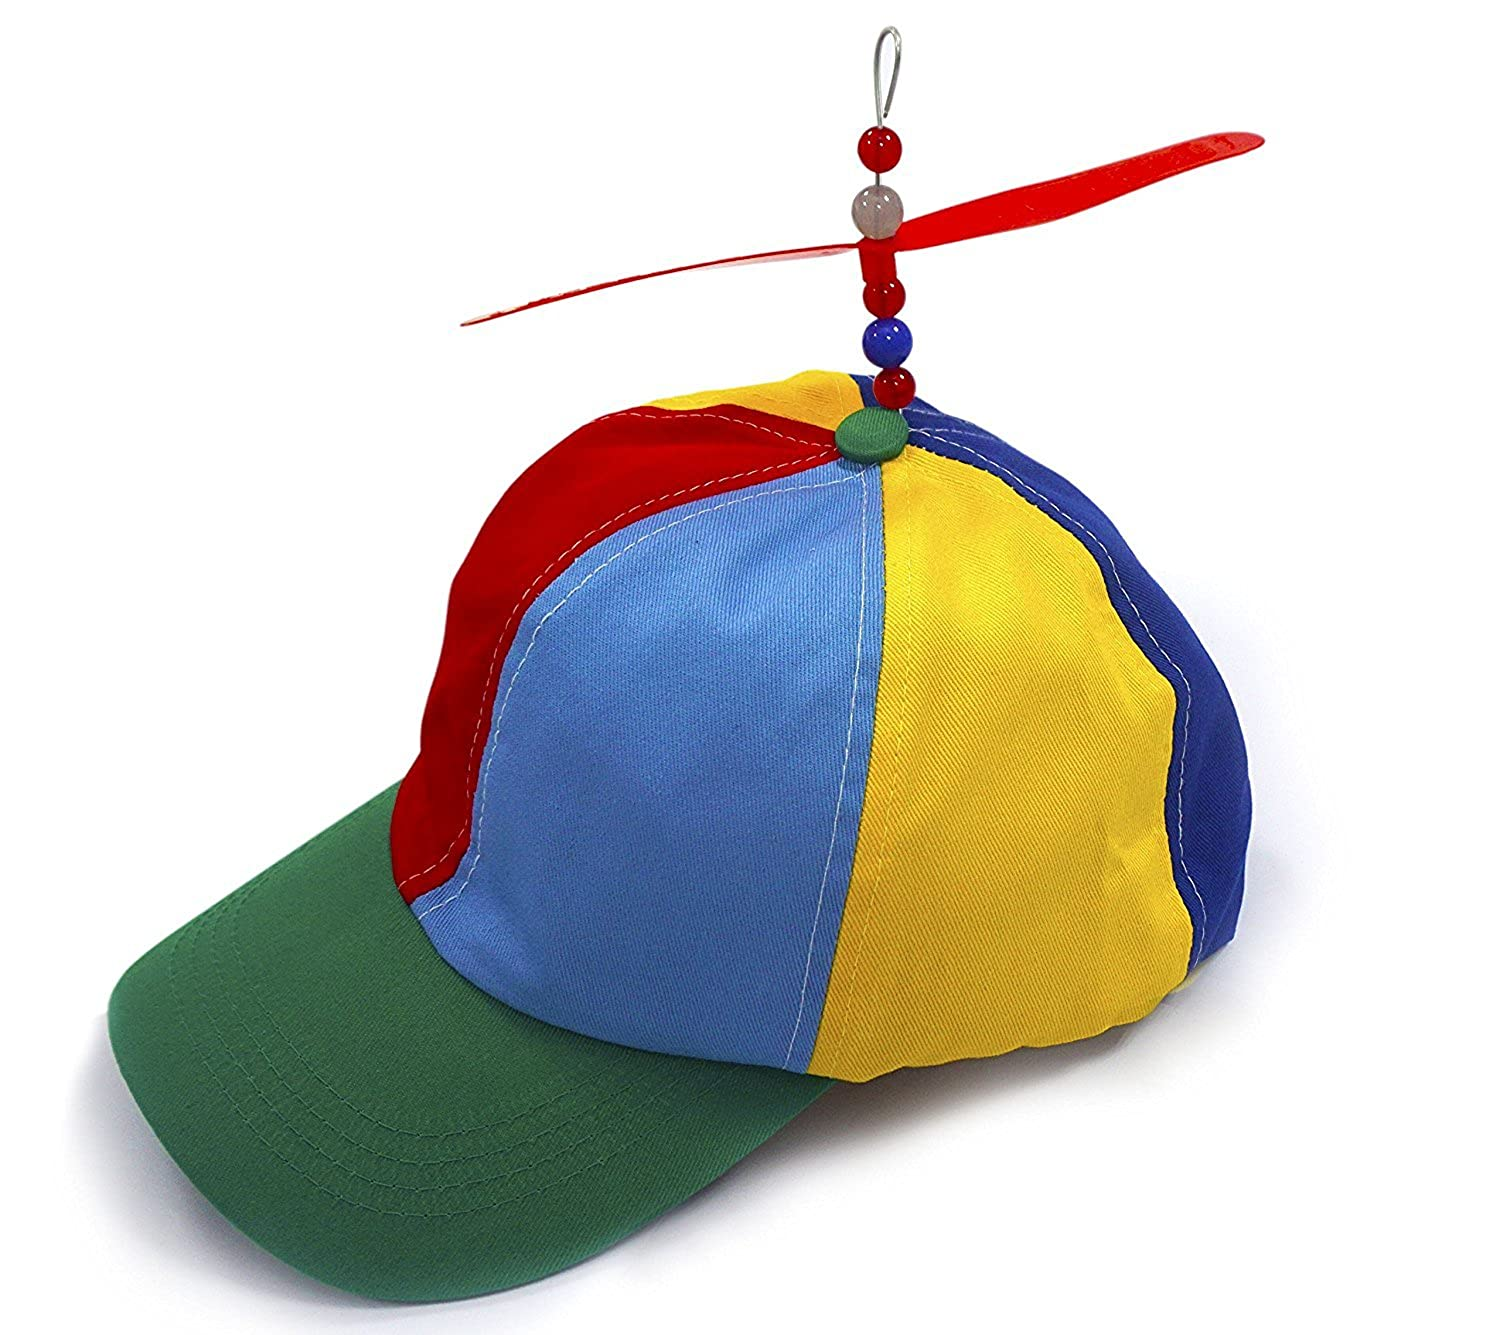 6f16ffcd7f6 Kuzhi Multi-Color Propeller Hat for Adult - Baseball Style (Green)   Amazon.ca  Clothing   Accessories